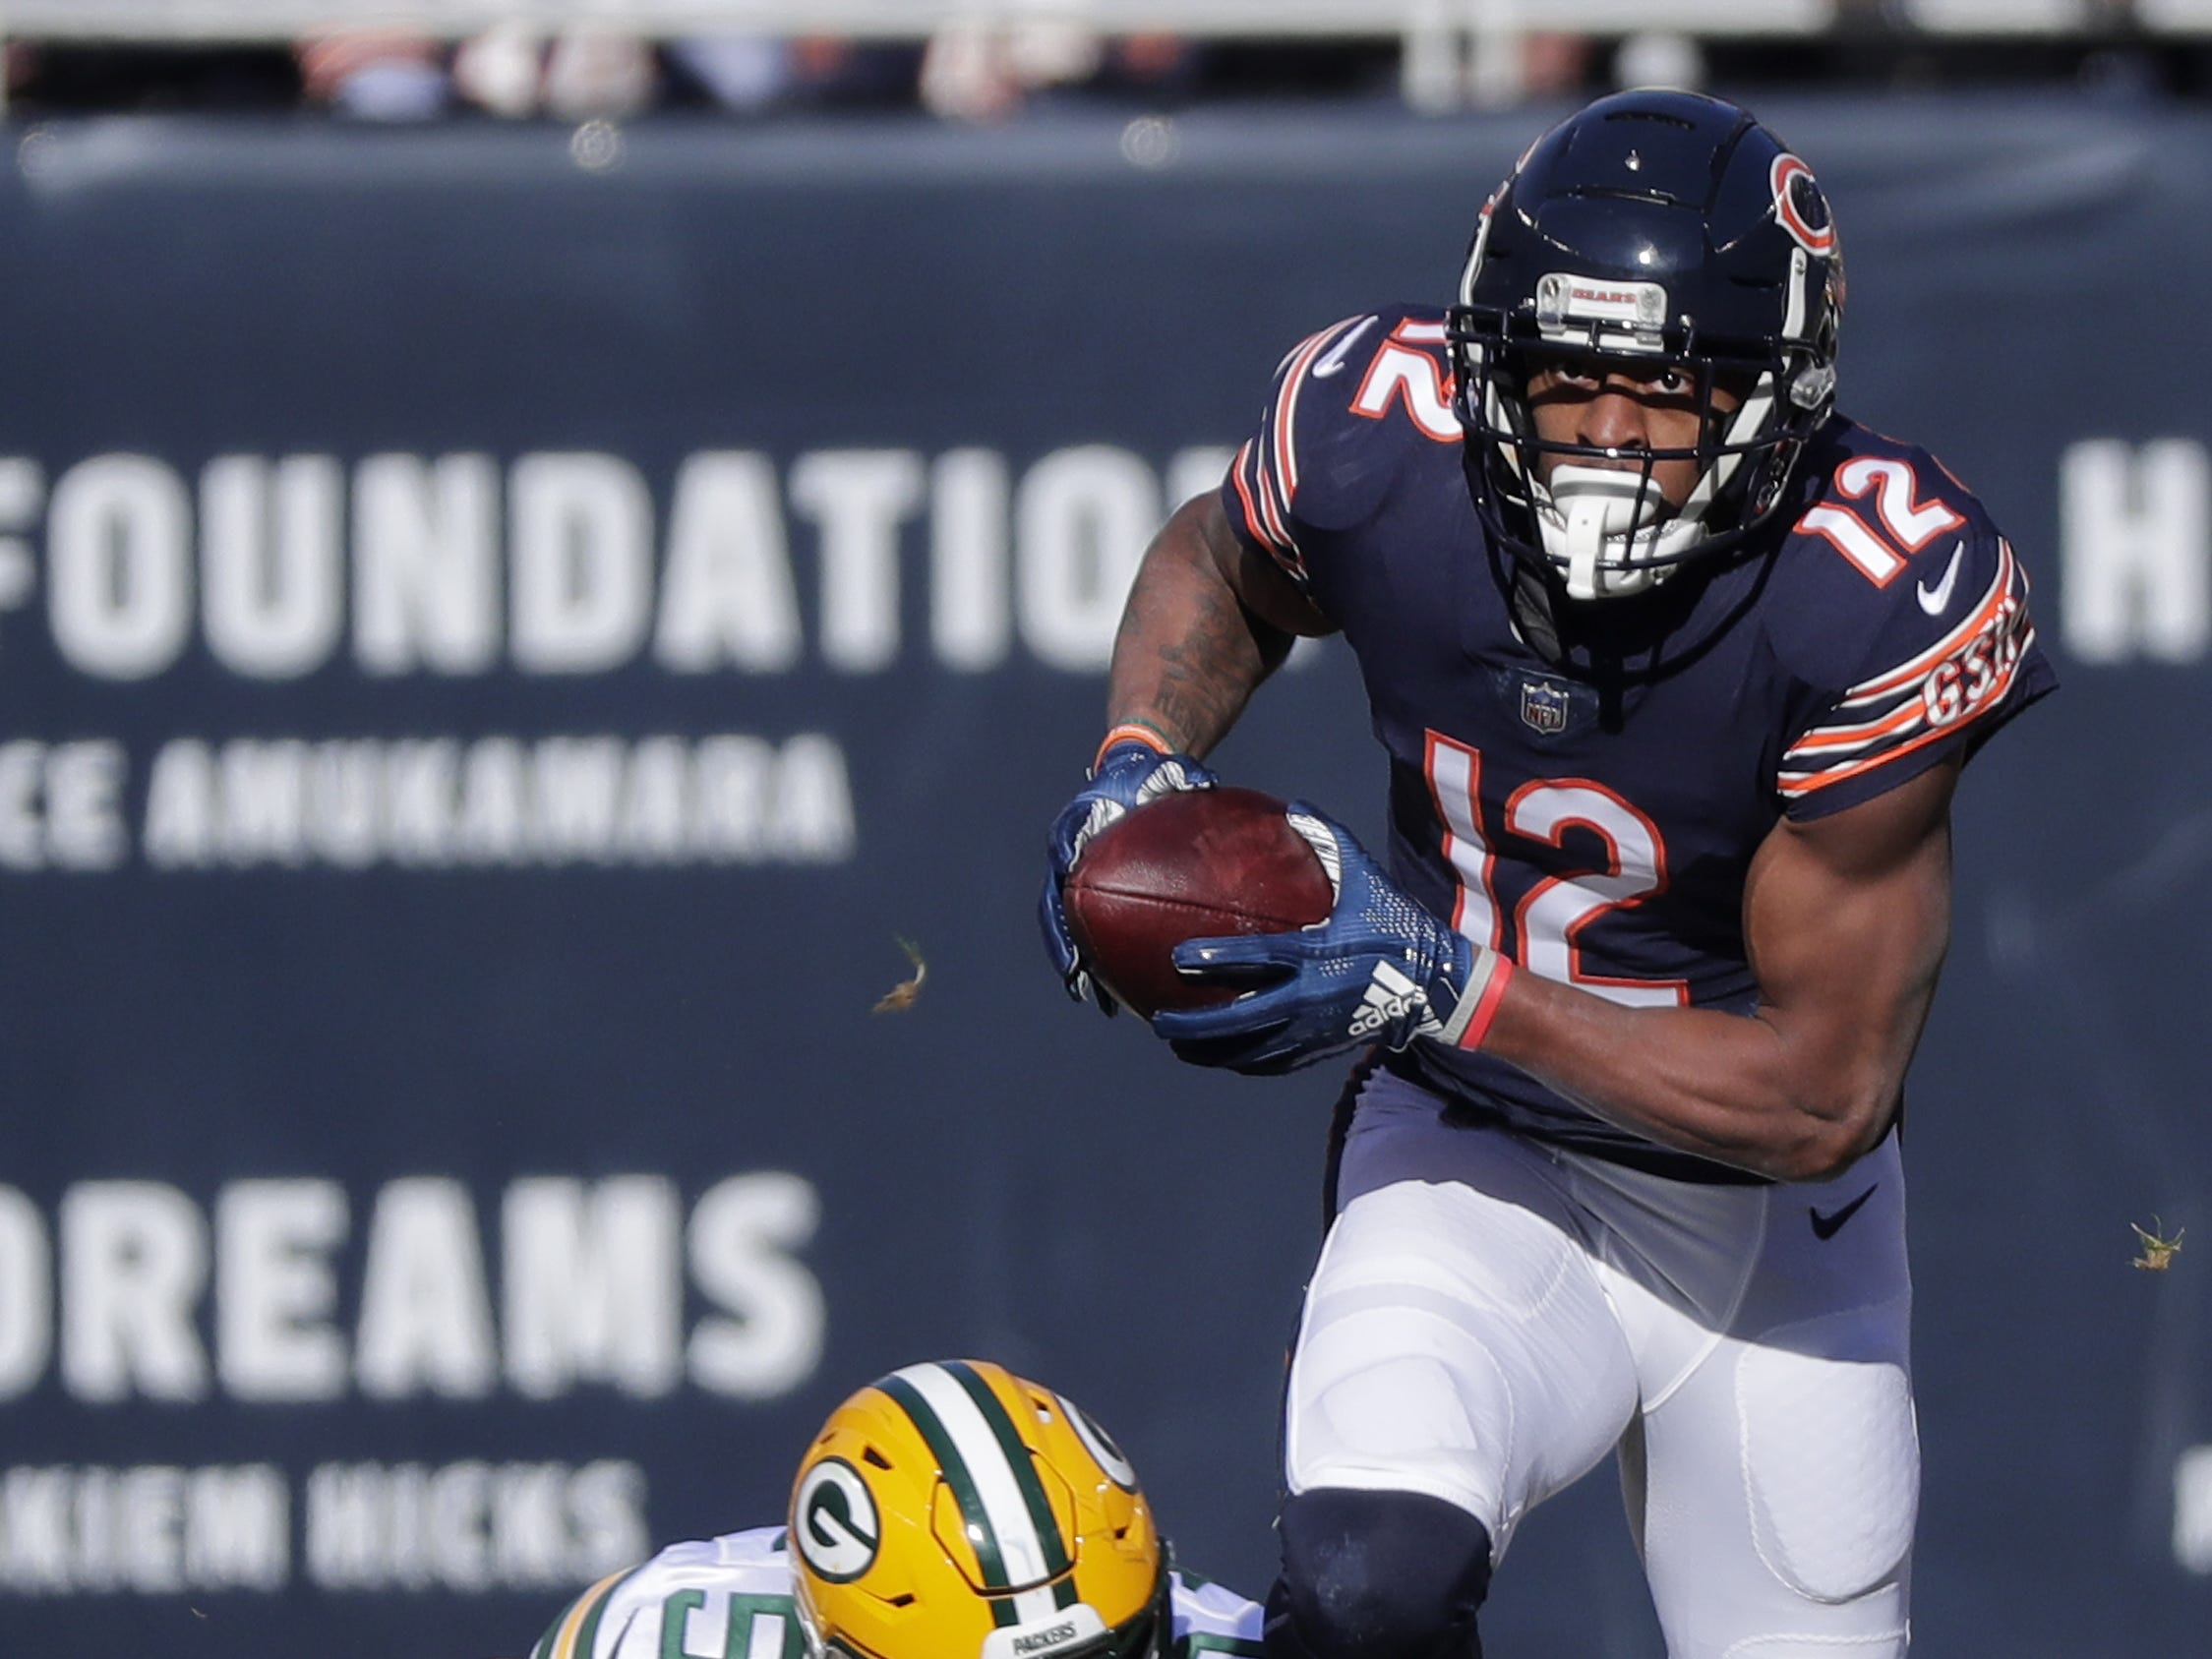 Chicago Bears wide receiver Allen Robinson (12) runs past Green Bay Packers inside linebacker Blake Martinez (50) in the first quarter at Soldier Field on Sunday, December 16, 2018 in Chicago, Illinois. Adam Wesley/USA TODAY NETWORK-Wis